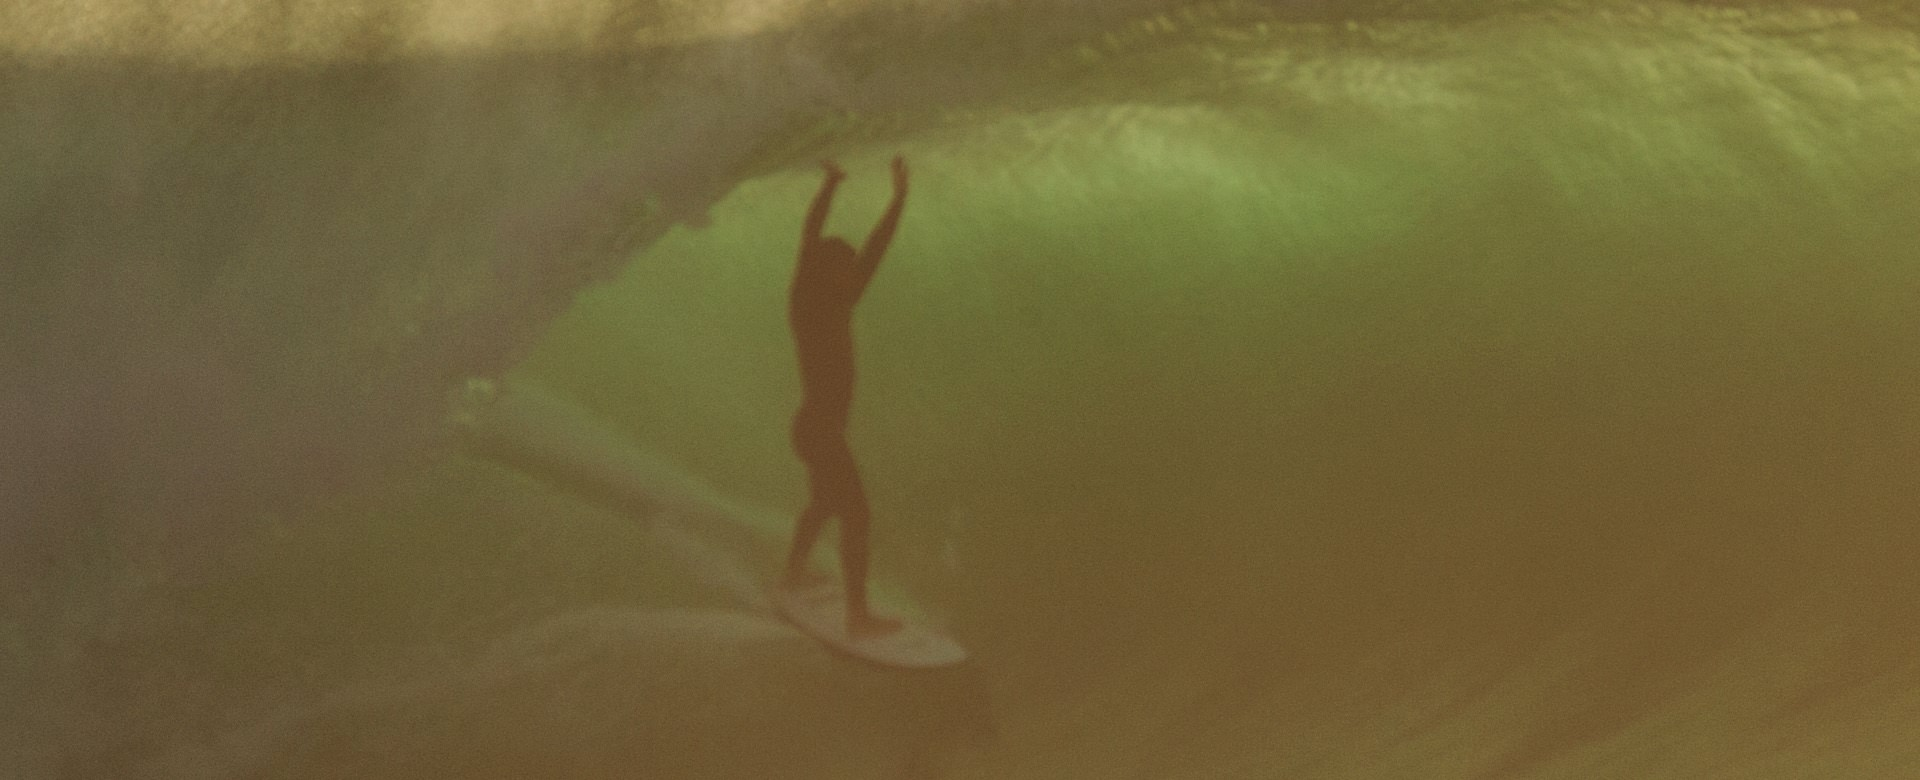 Riding the tube in Supertubos, Peniche